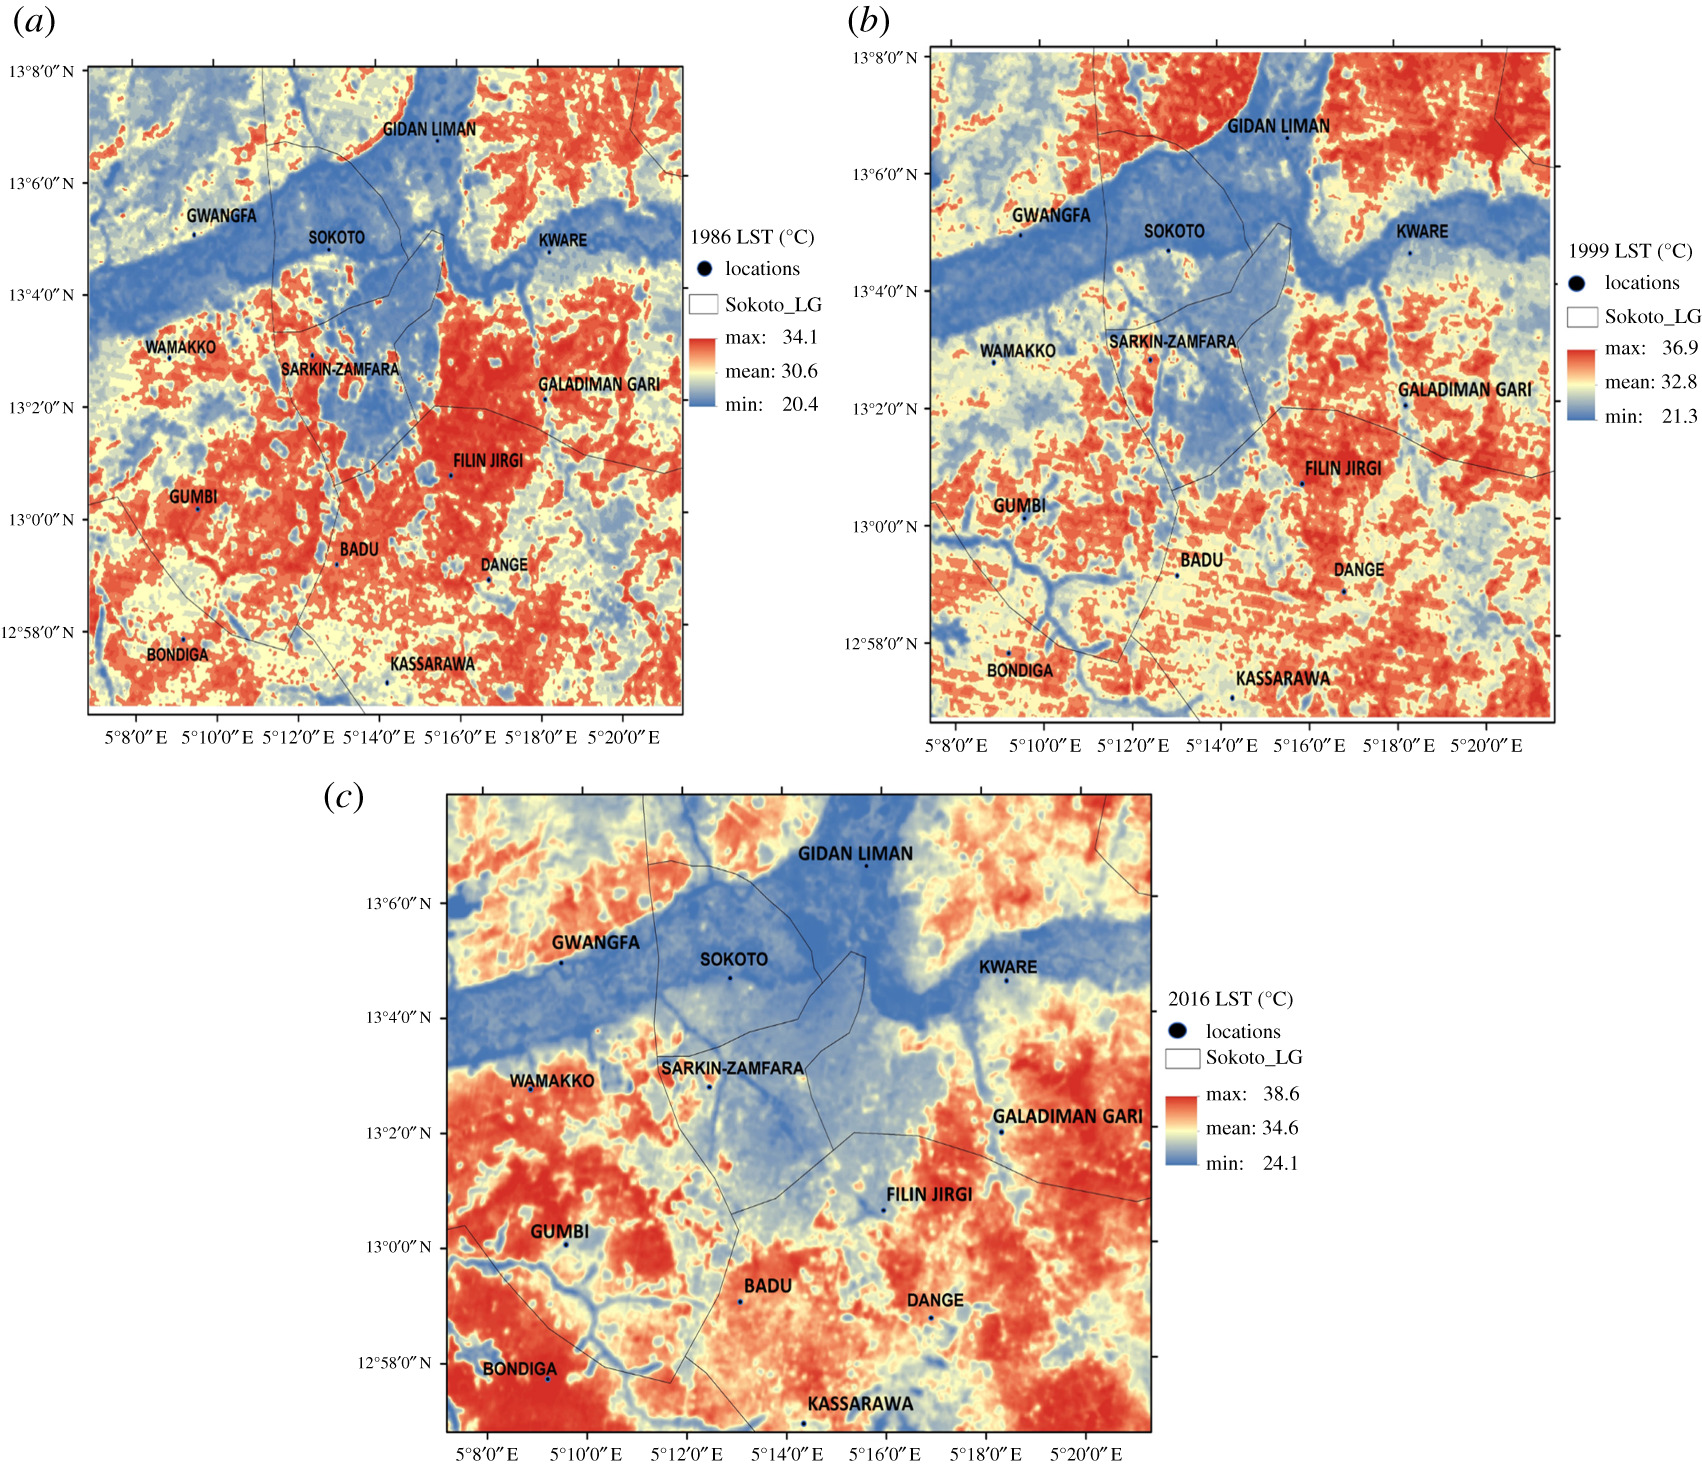 Spatio-temporal analysis of land use dynamics and its potential